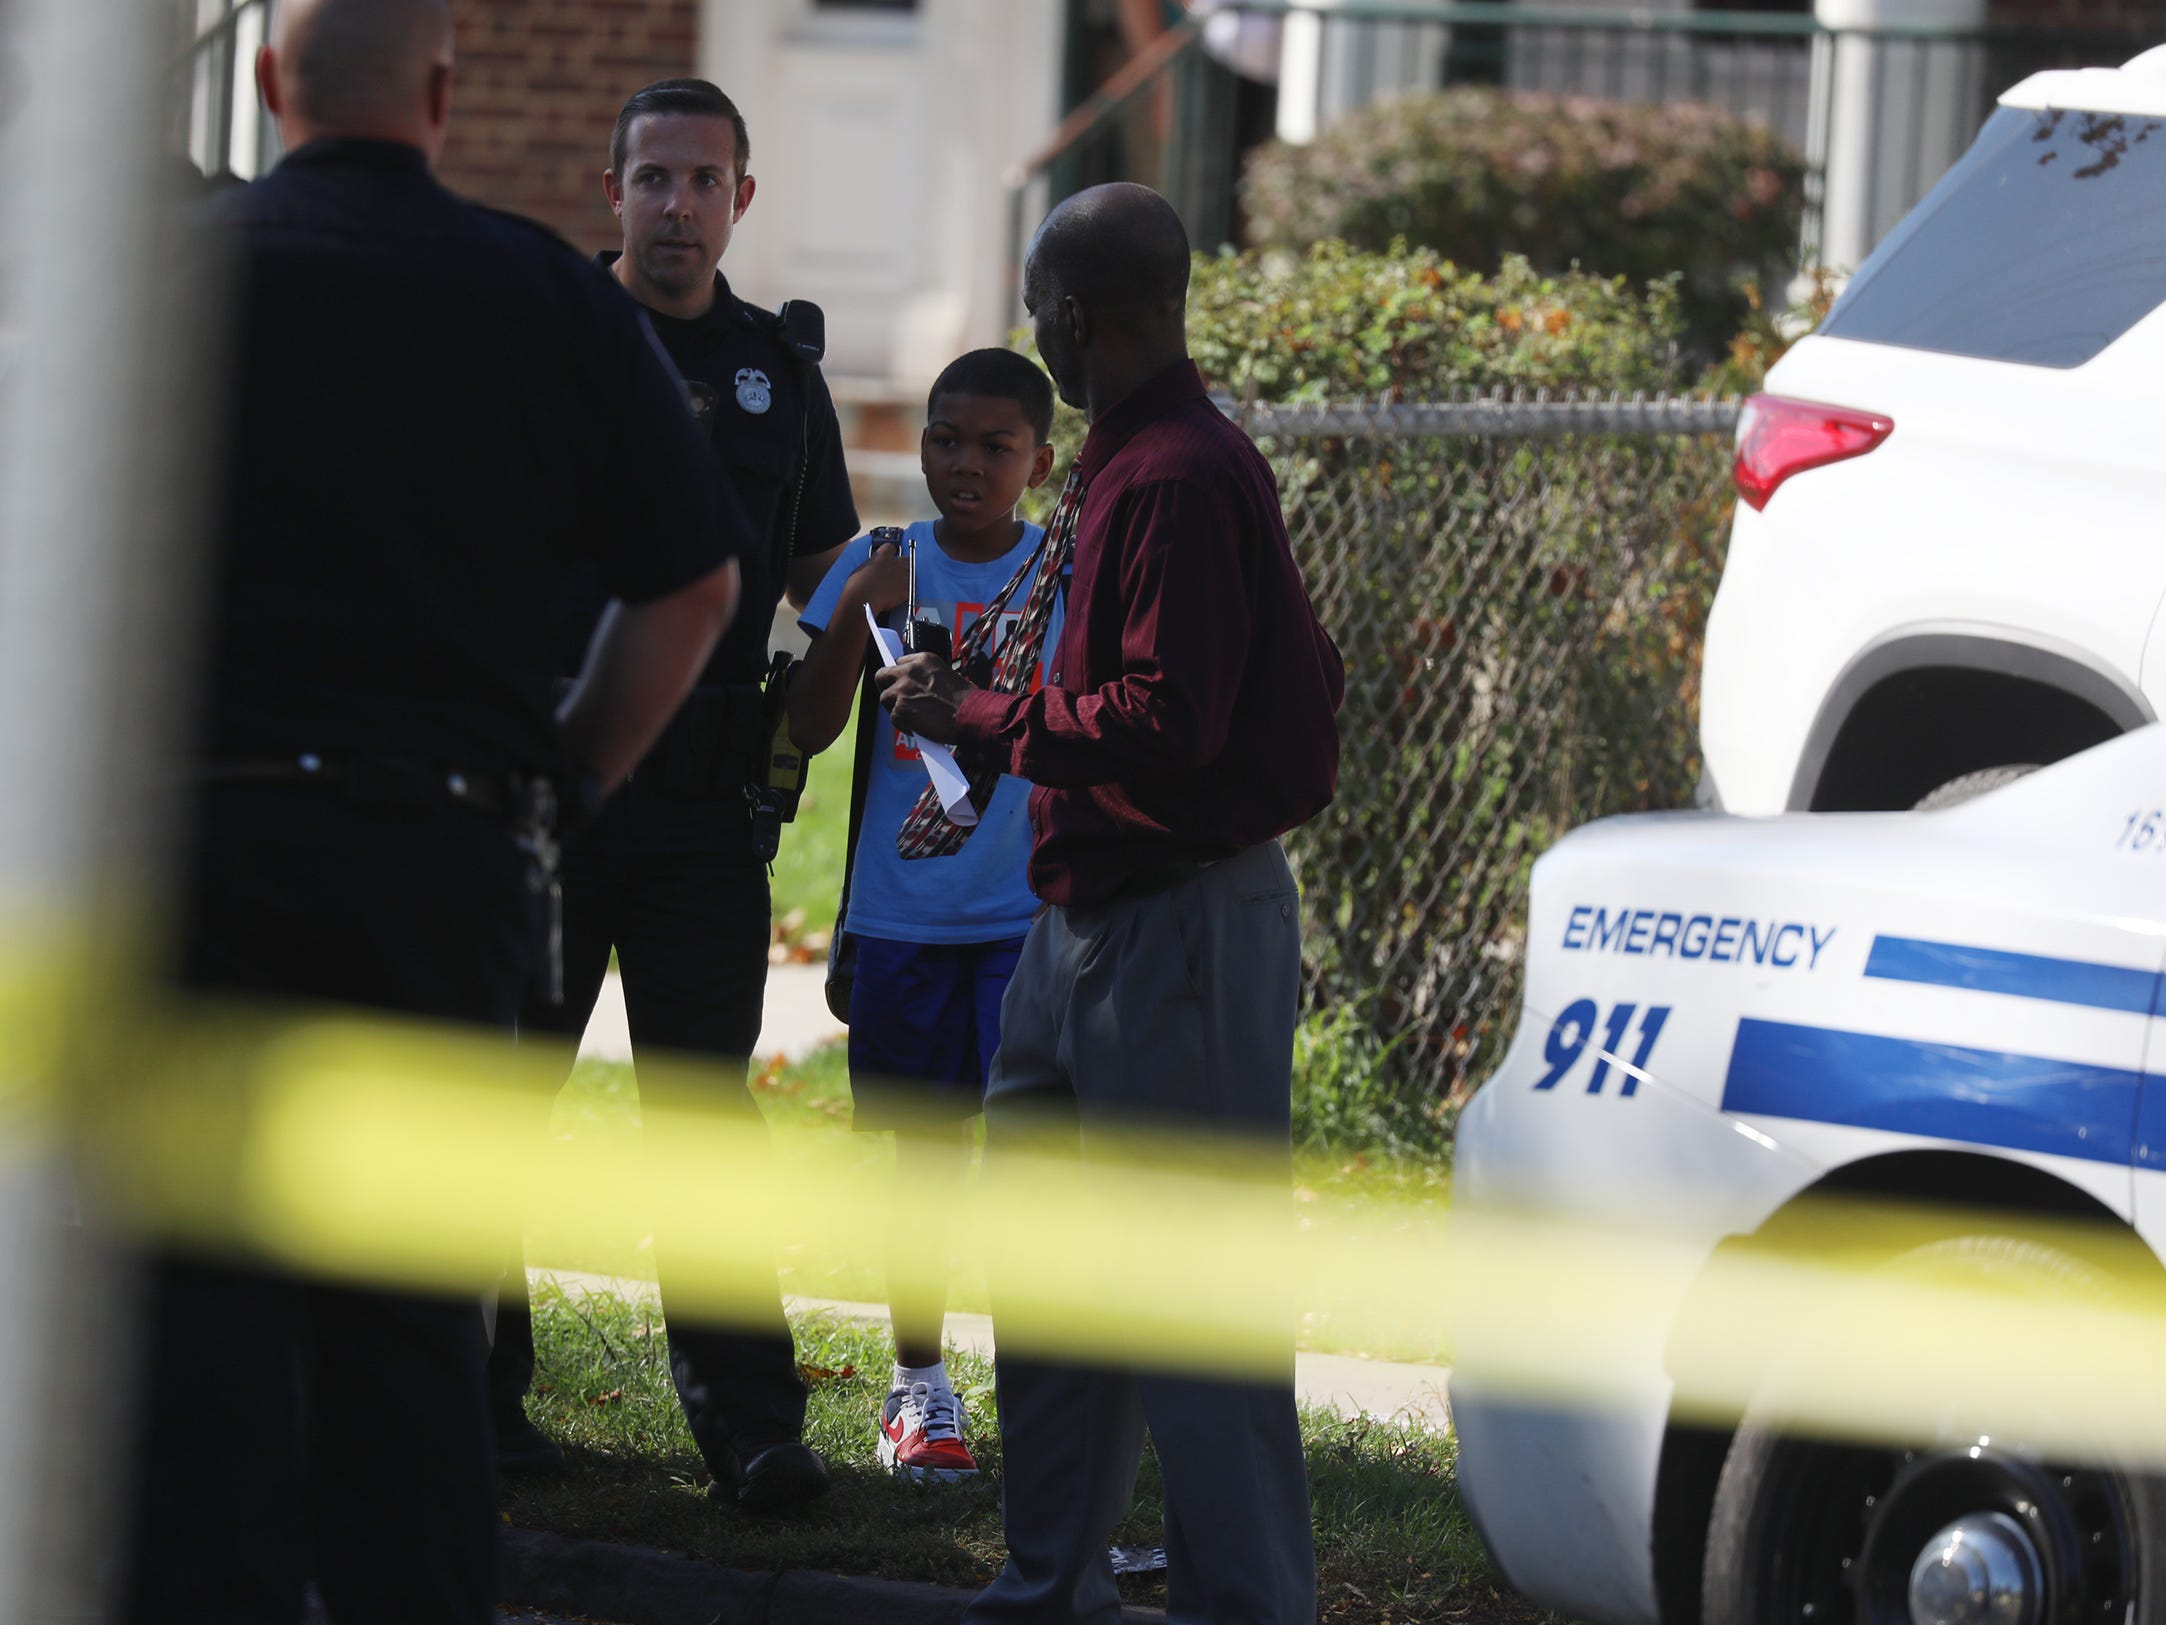 A boy is escorted from School 25 by police and school personnel across Goodman St. to Powers St. to his waiting family.